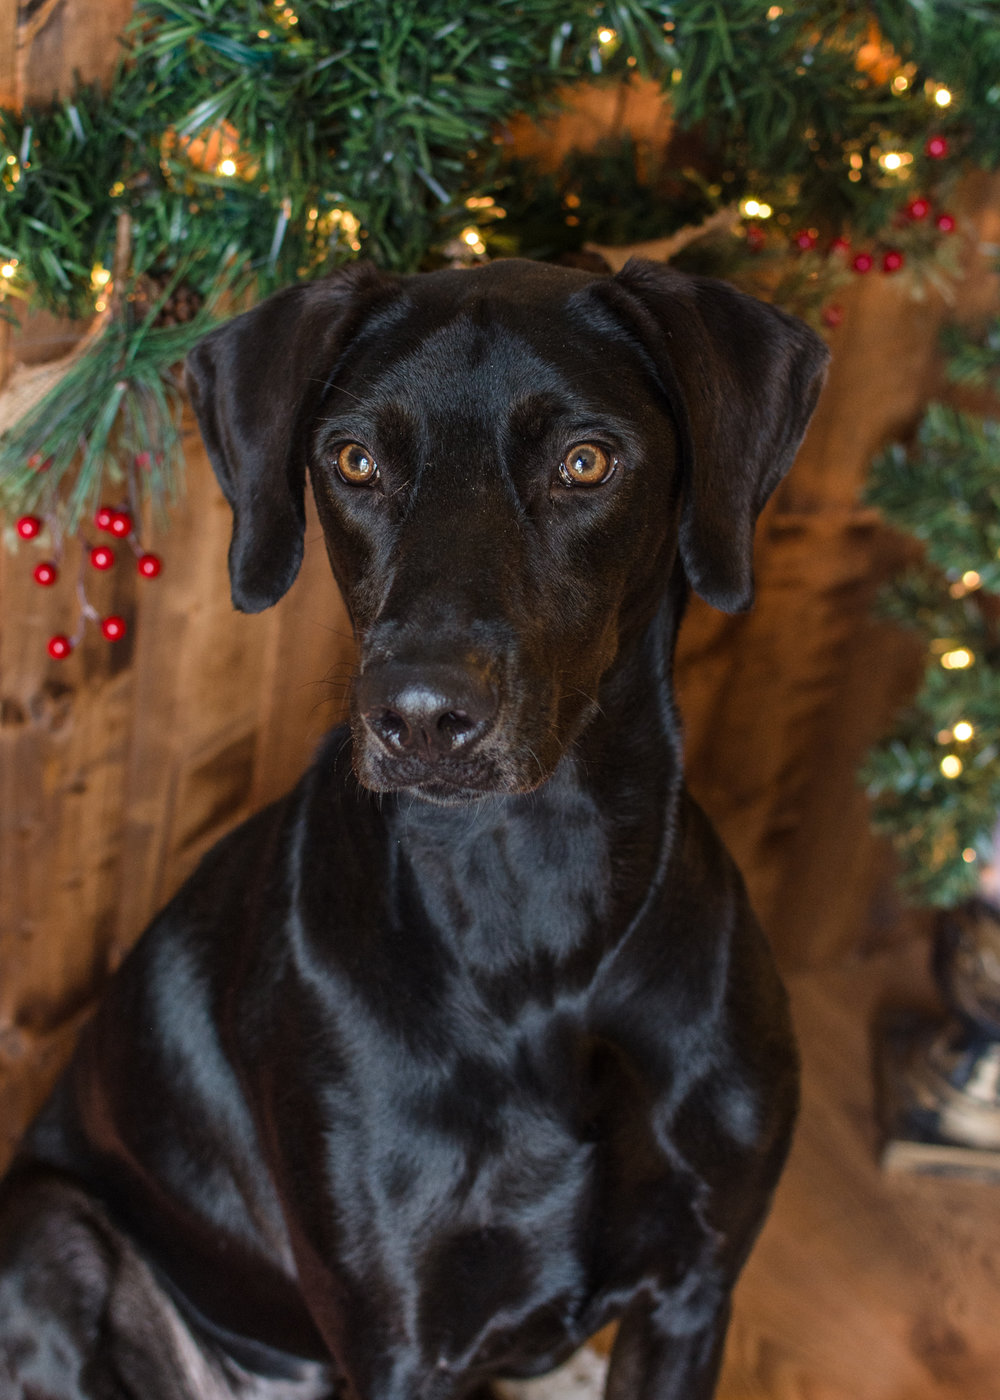 Samson! an 18 month old lab. Look at those beautiful brown eyes. This would make a beautiful Holiday Card!